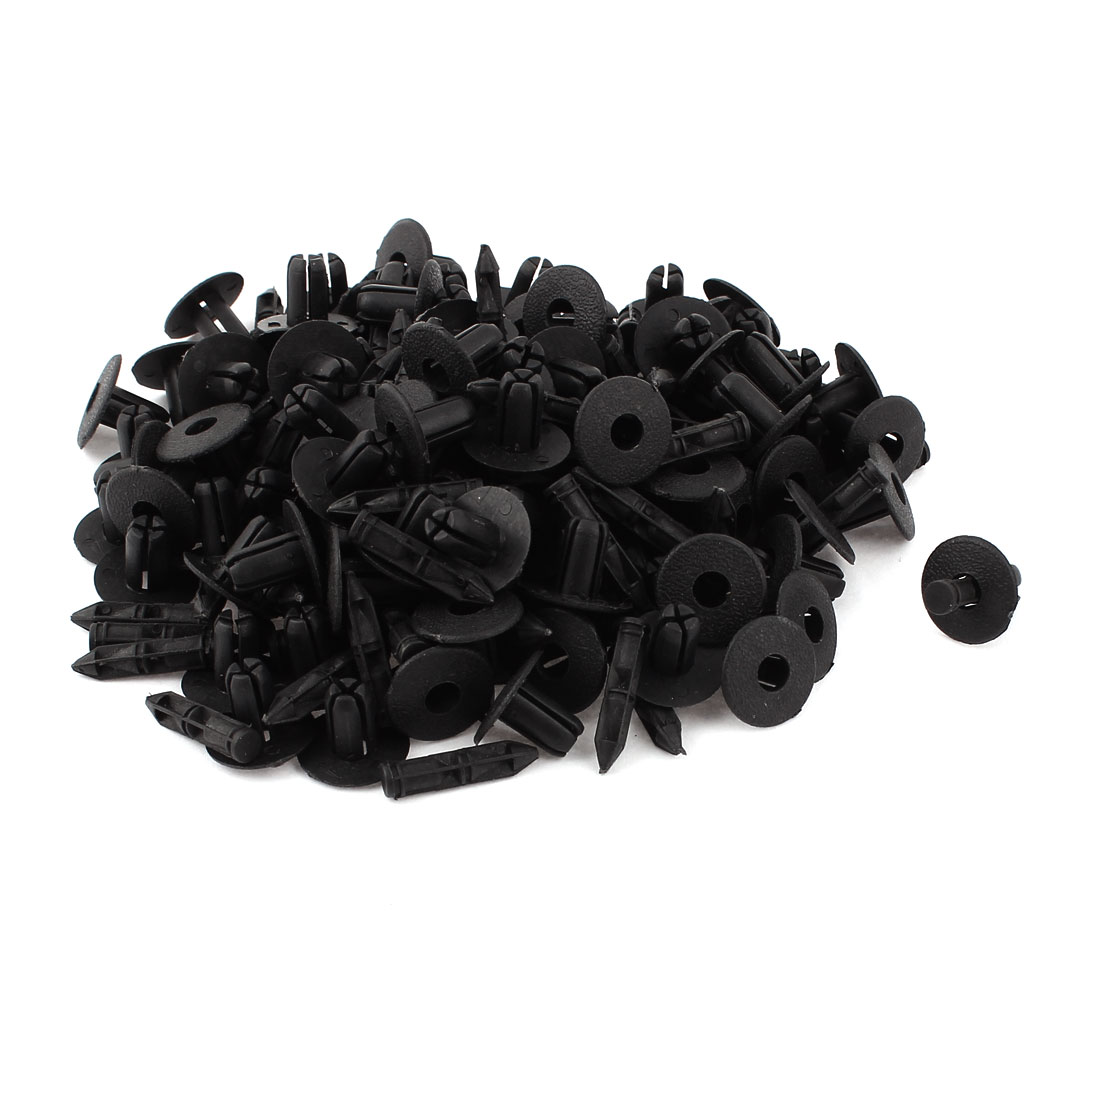 100pcs Universal Black Plastic Push Type Fastener Rivets Car Door Clips for 7mm Dia Hole